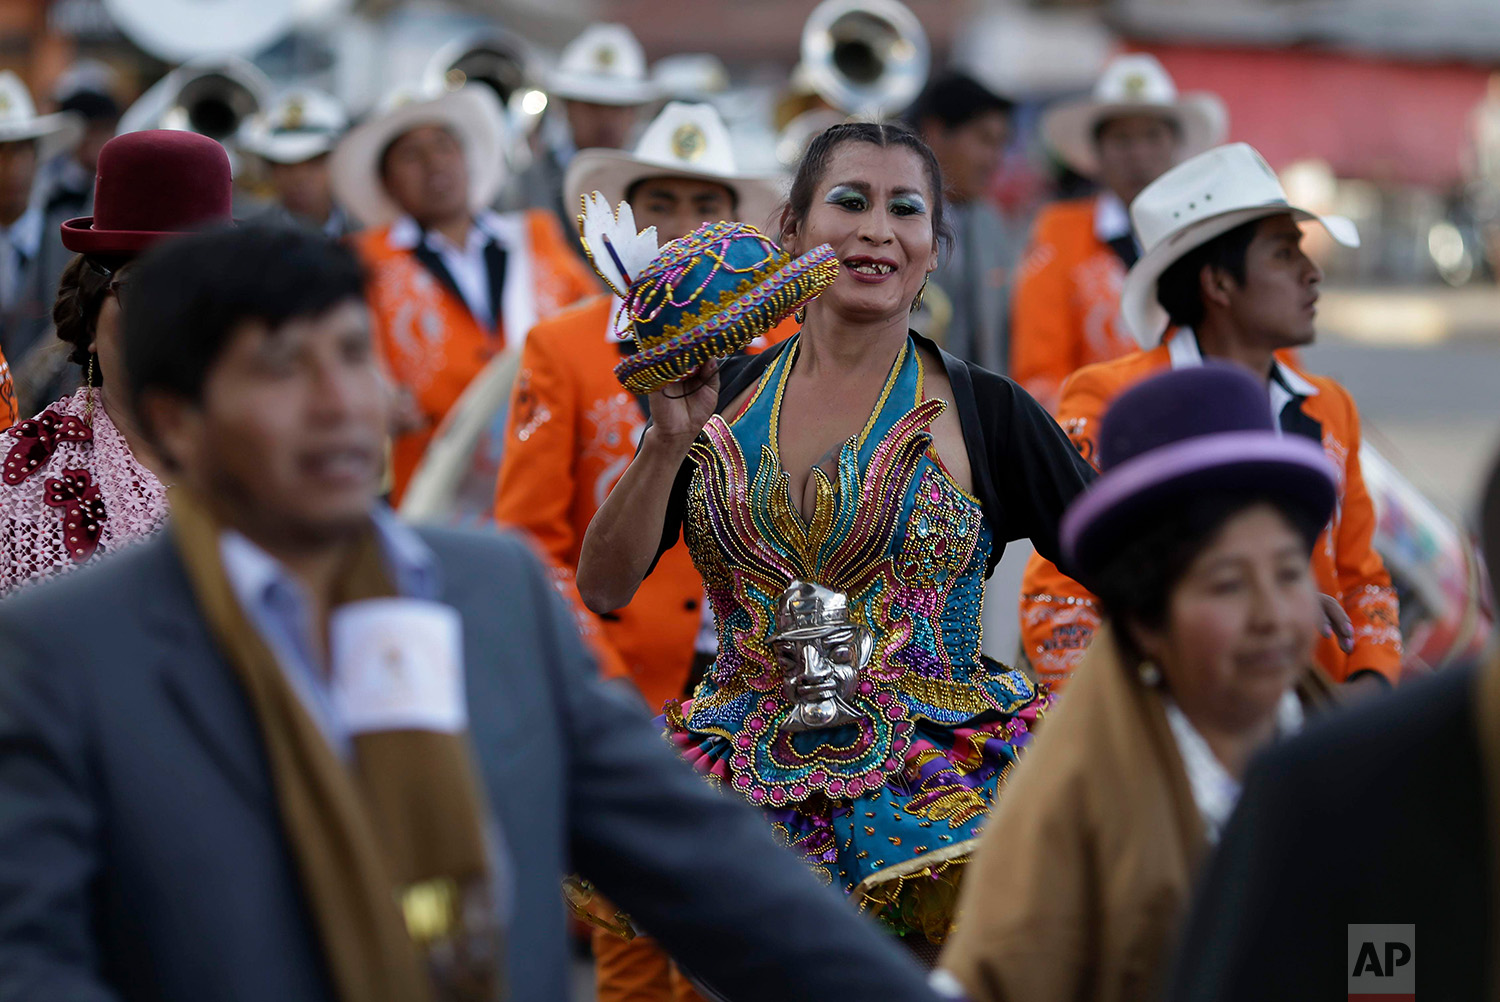 """Transgender Paloma, dressed as a dancer known as a """"china"""" for the """"Morenada"""" or Dance of the Black Slaves, takes part in a religious procession in honor of Our Lady of Copacabana, in Cuzco, Peru, Aug. 5, 2018. A group of transsexual activists in Cuzco have adopted the Bolivian virgin as their patron saint. (AP Photo/Martin Mejia)"""